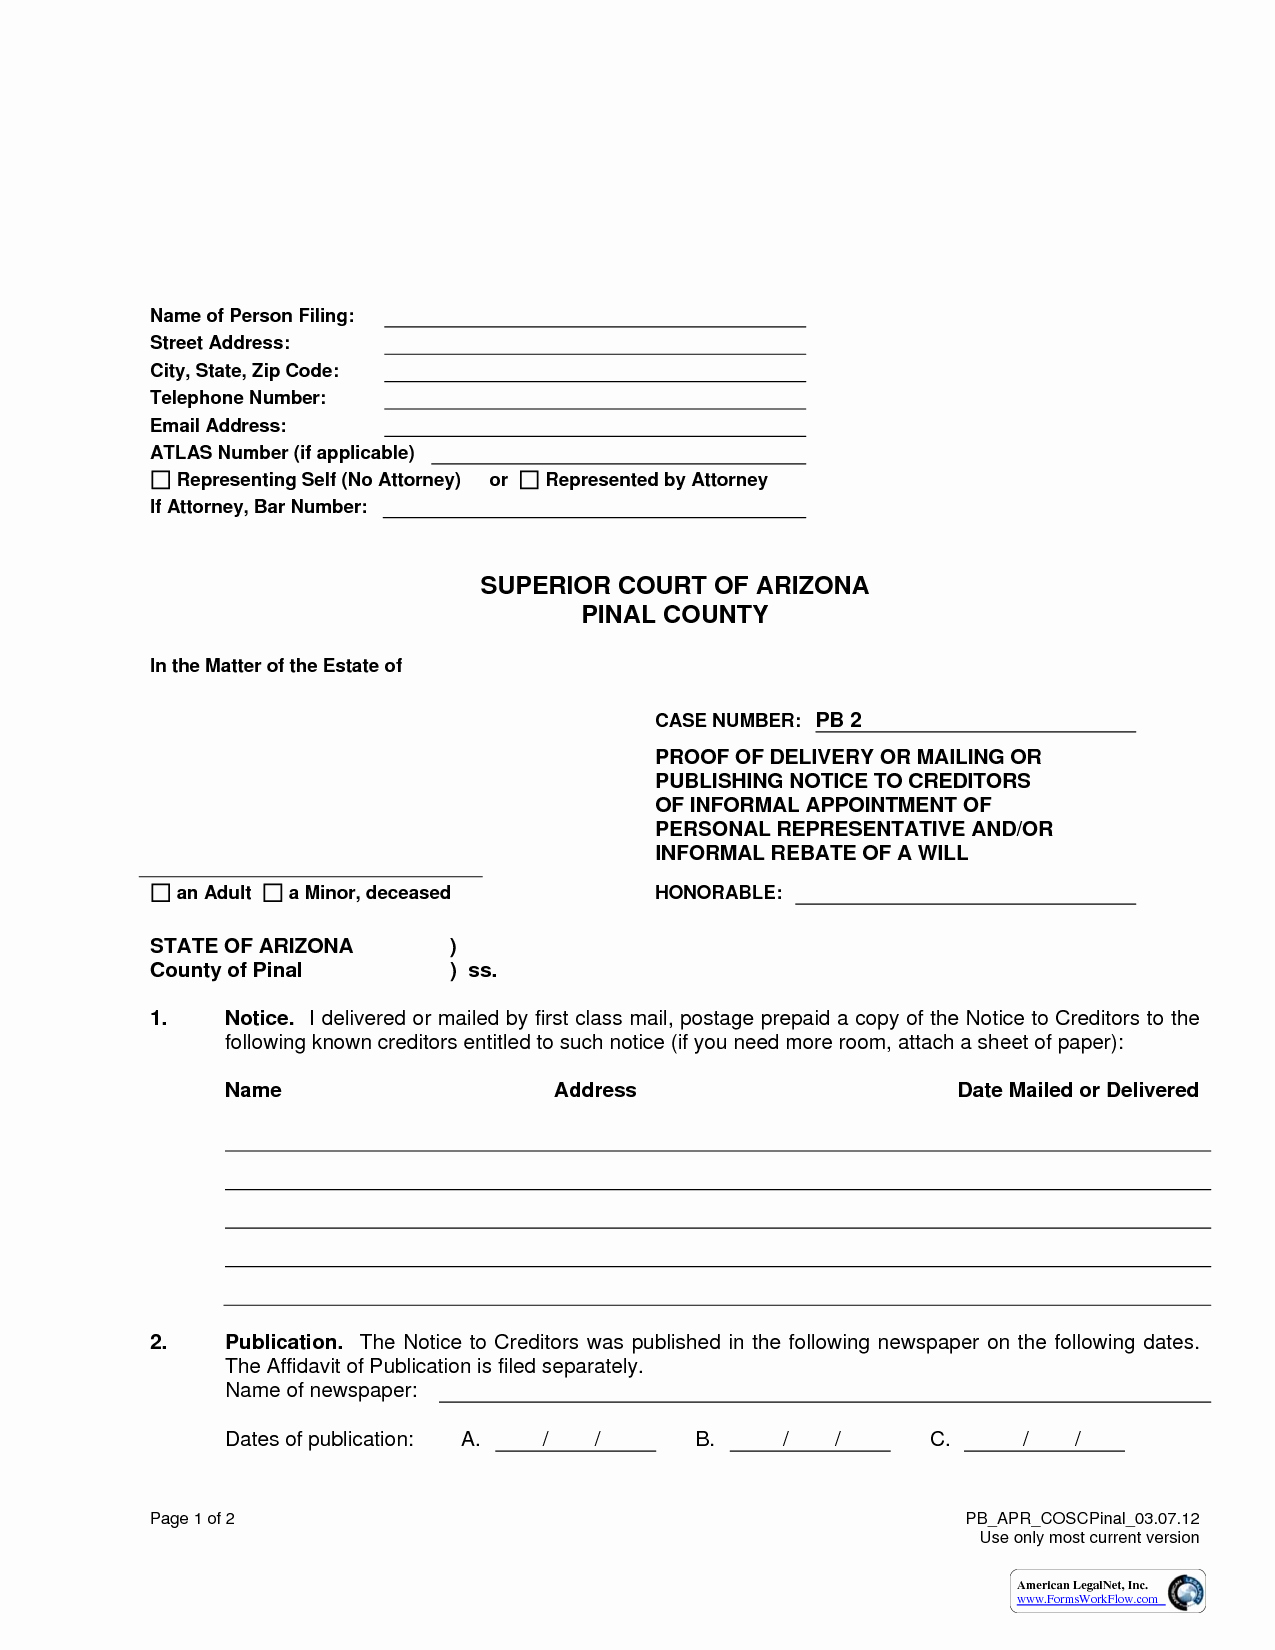 Proof Of Delivery Template Unique Proof Delivery form Template Portablegasgrillweber